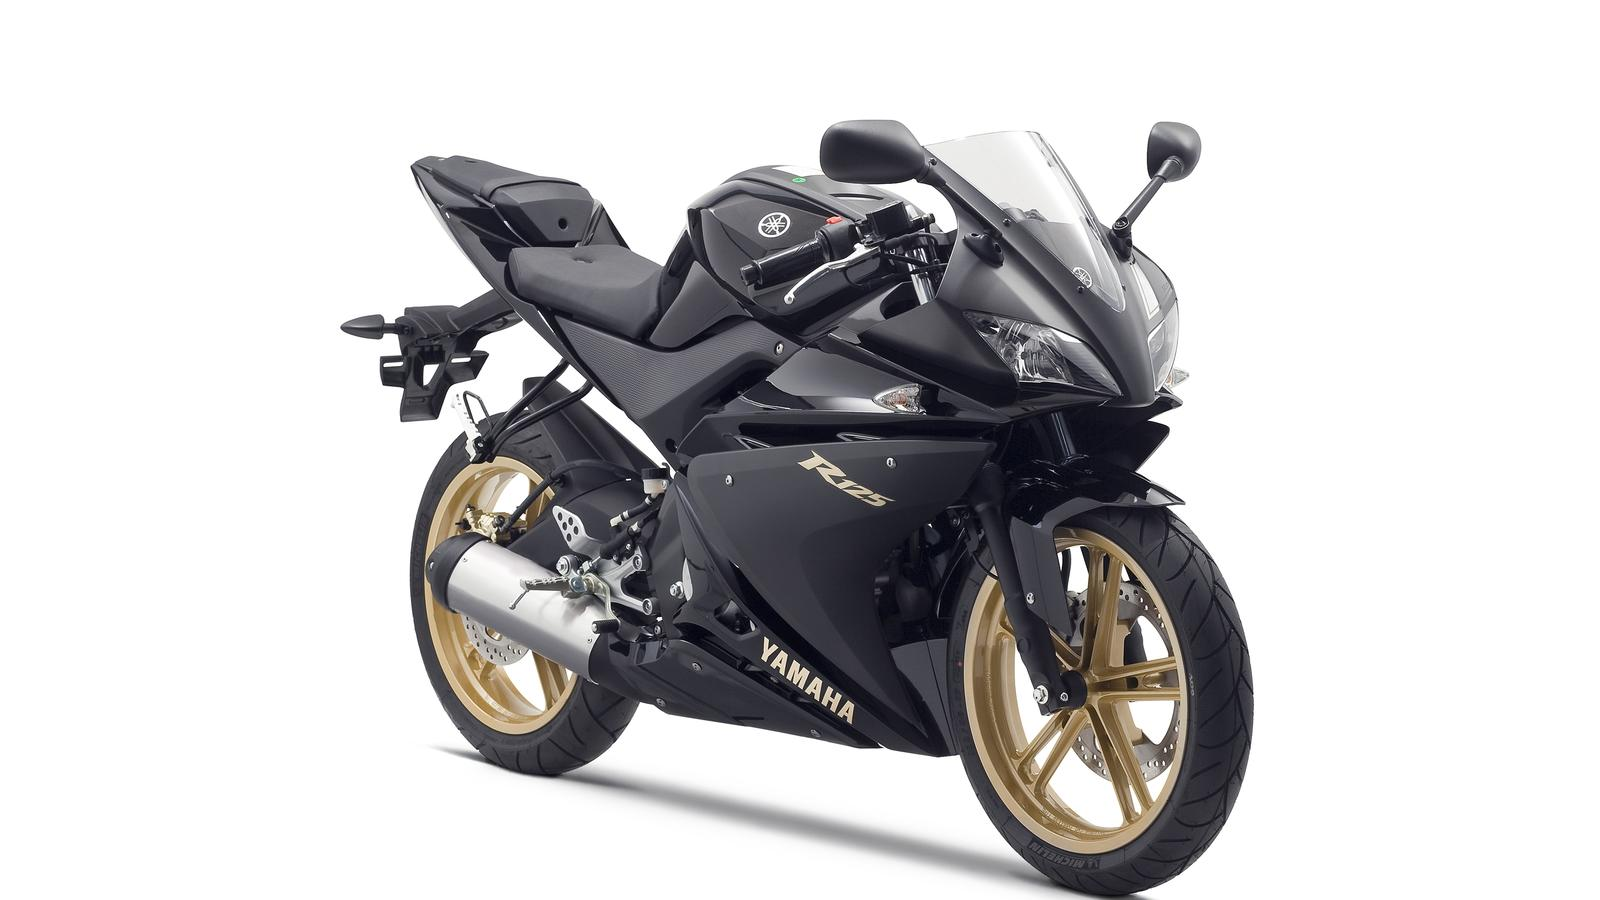 fiche revue technique yamaha yzf r125 2011. Black Bedroom Furniture Sets. Home Design Ideas